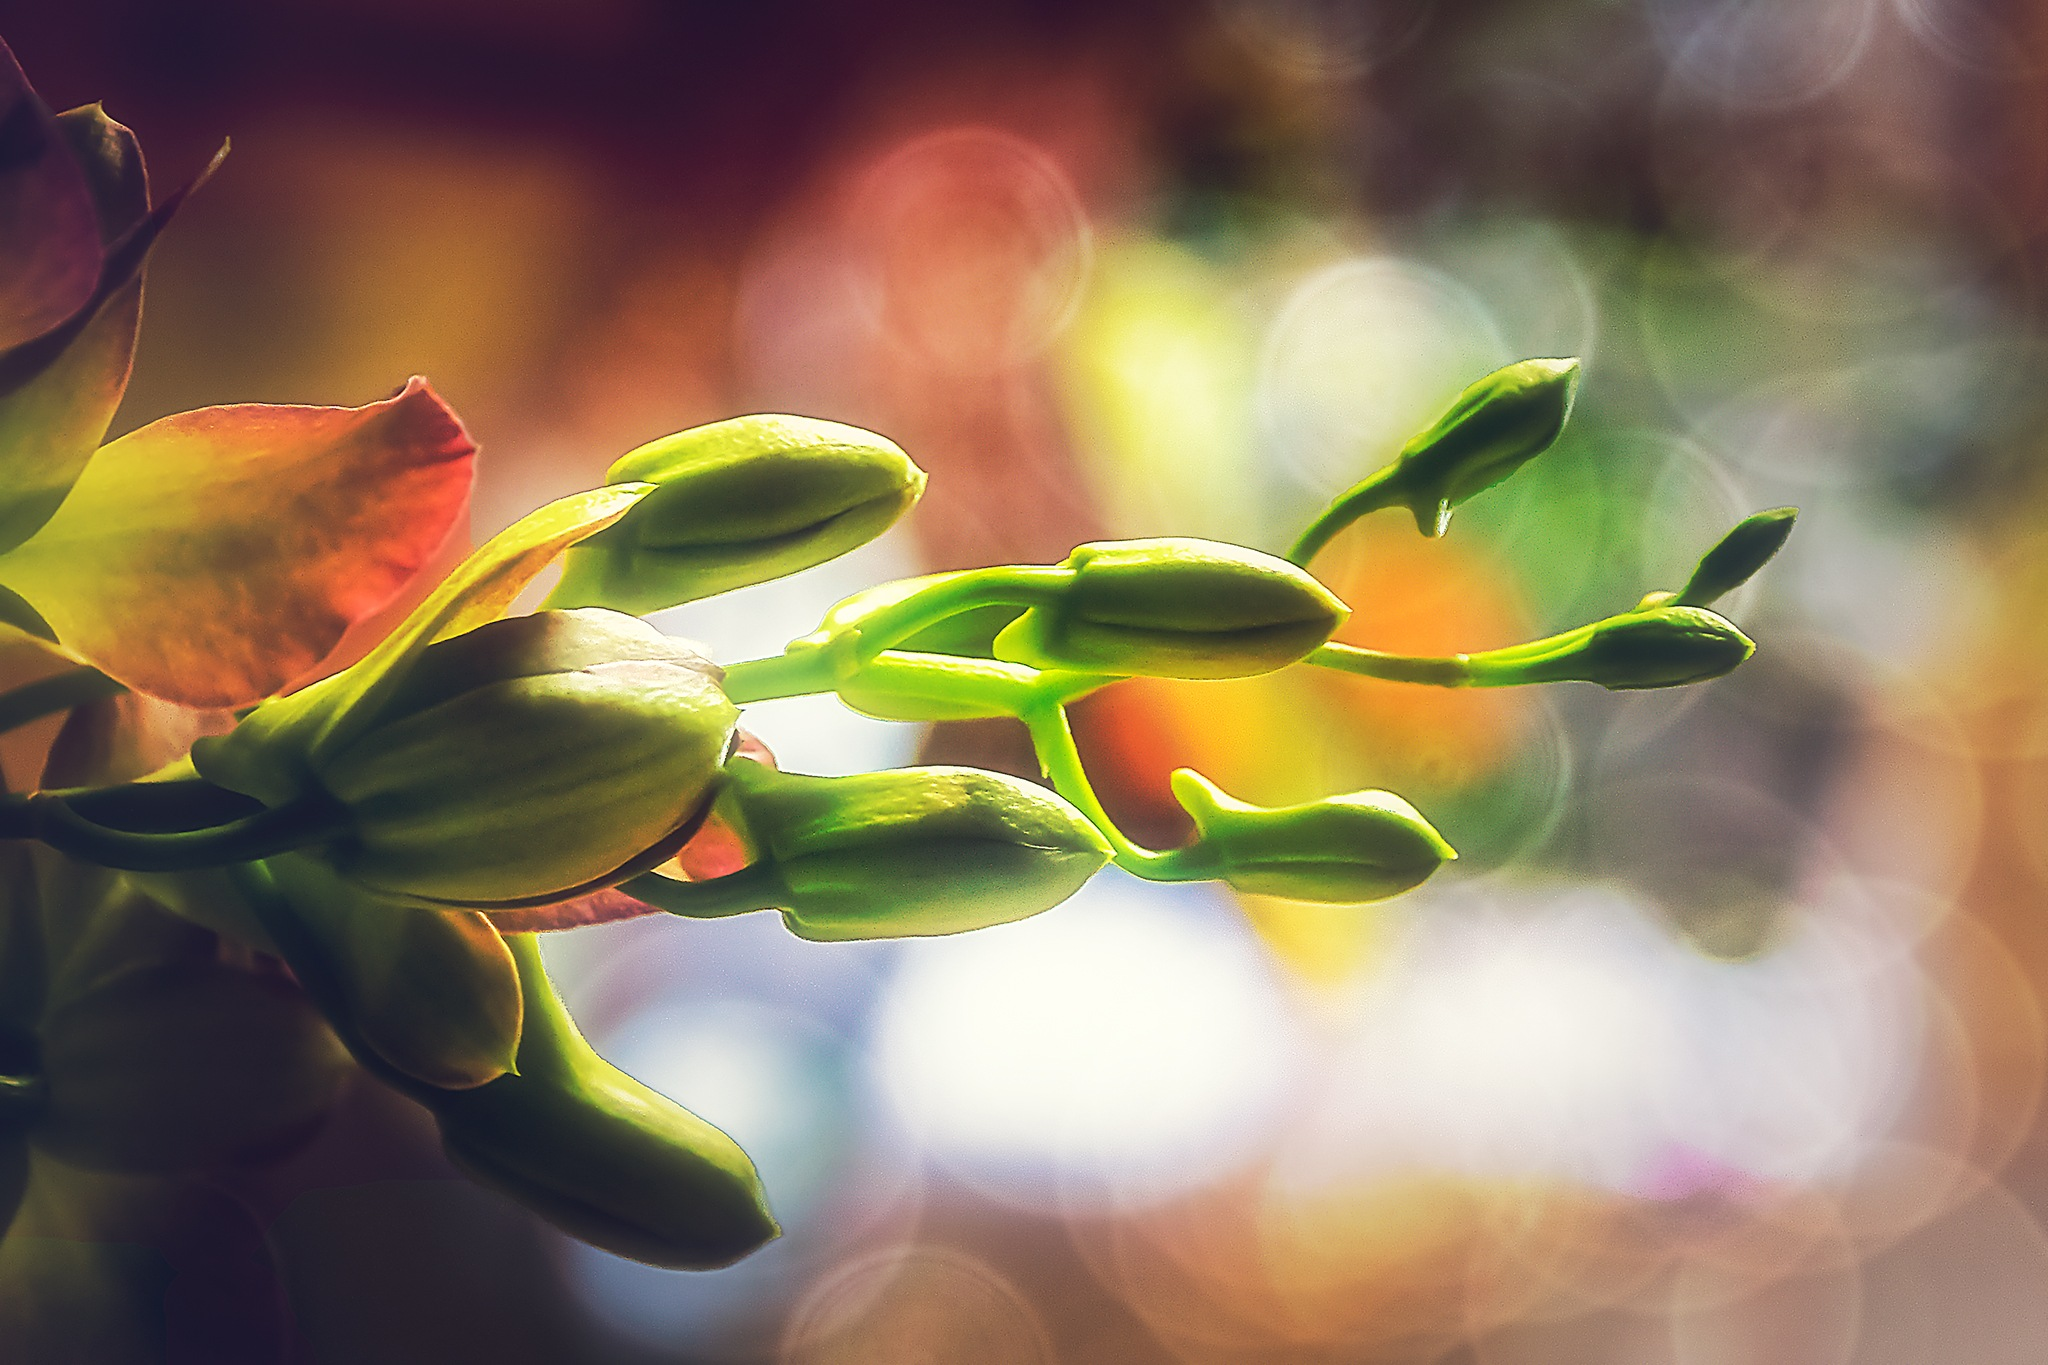 Nature 124-001 - Orchid's buds by Tony Guzman